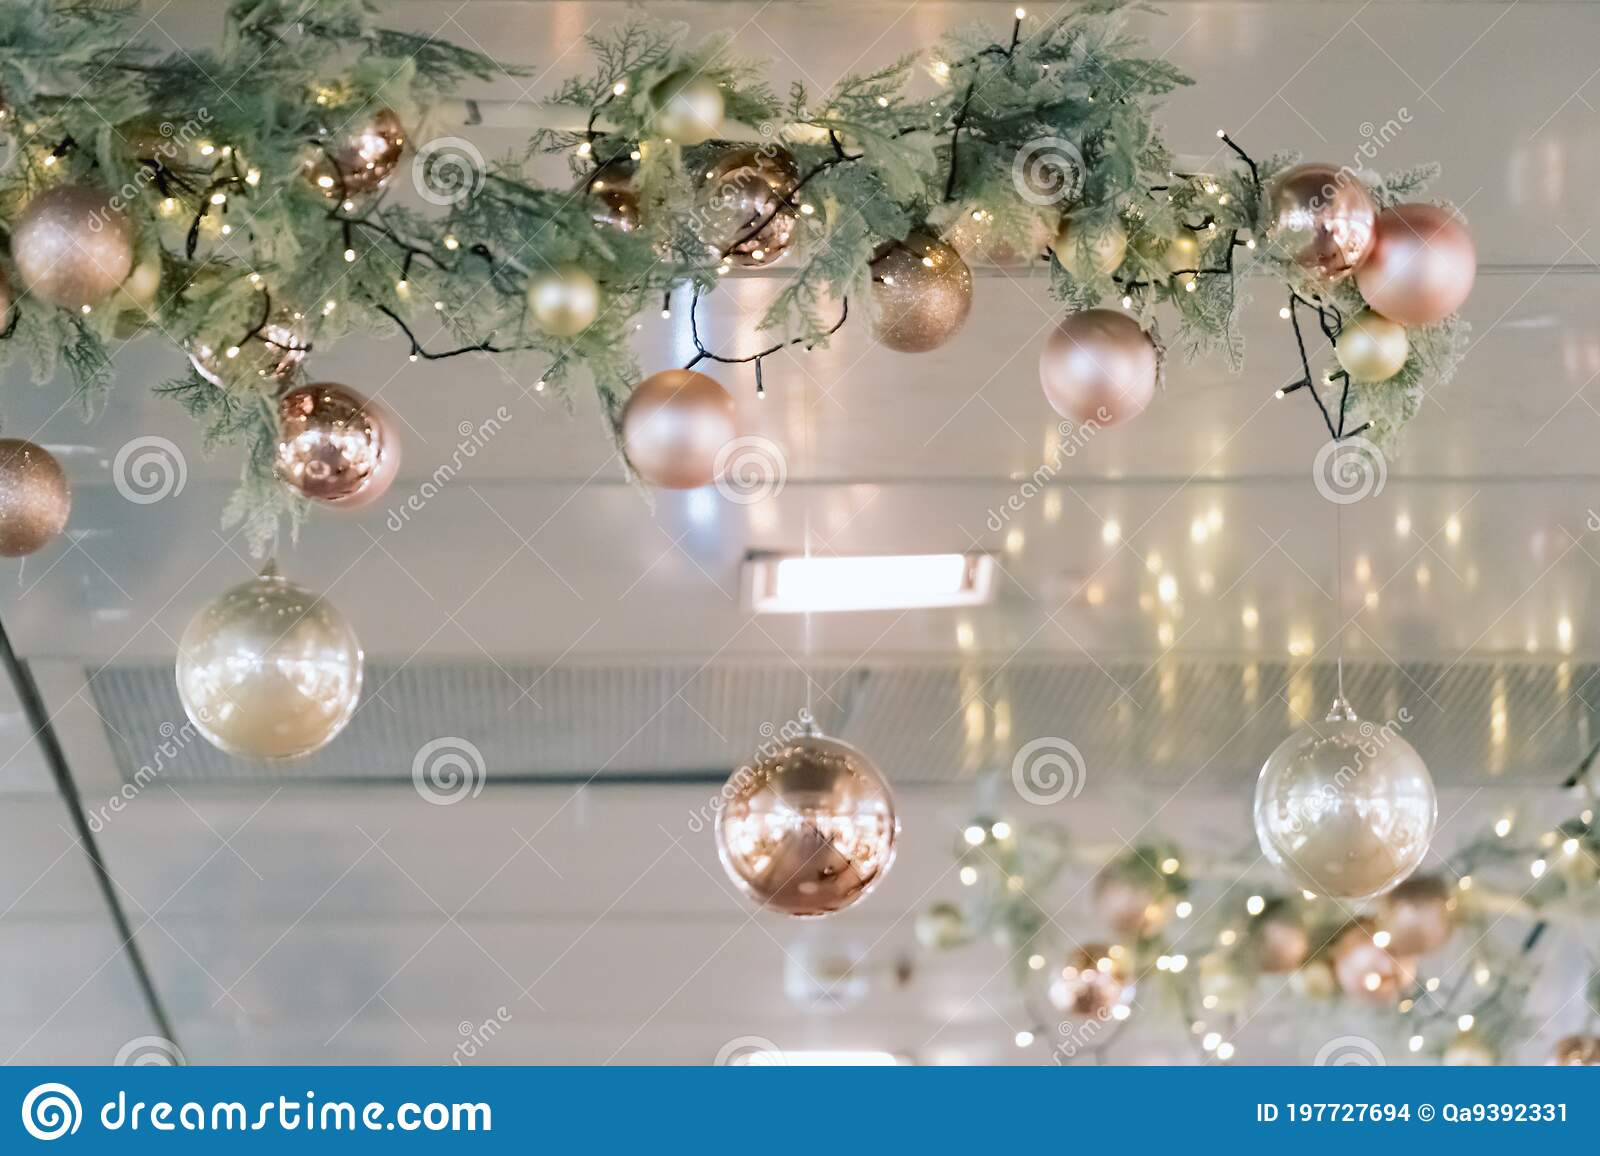 Christmas Decorations Hanging From Ceiling In Modern Mall Shopping Center Or Exhibition Place Baubles Hanging On Stock Photo Image Of Beautiful Center 197727694